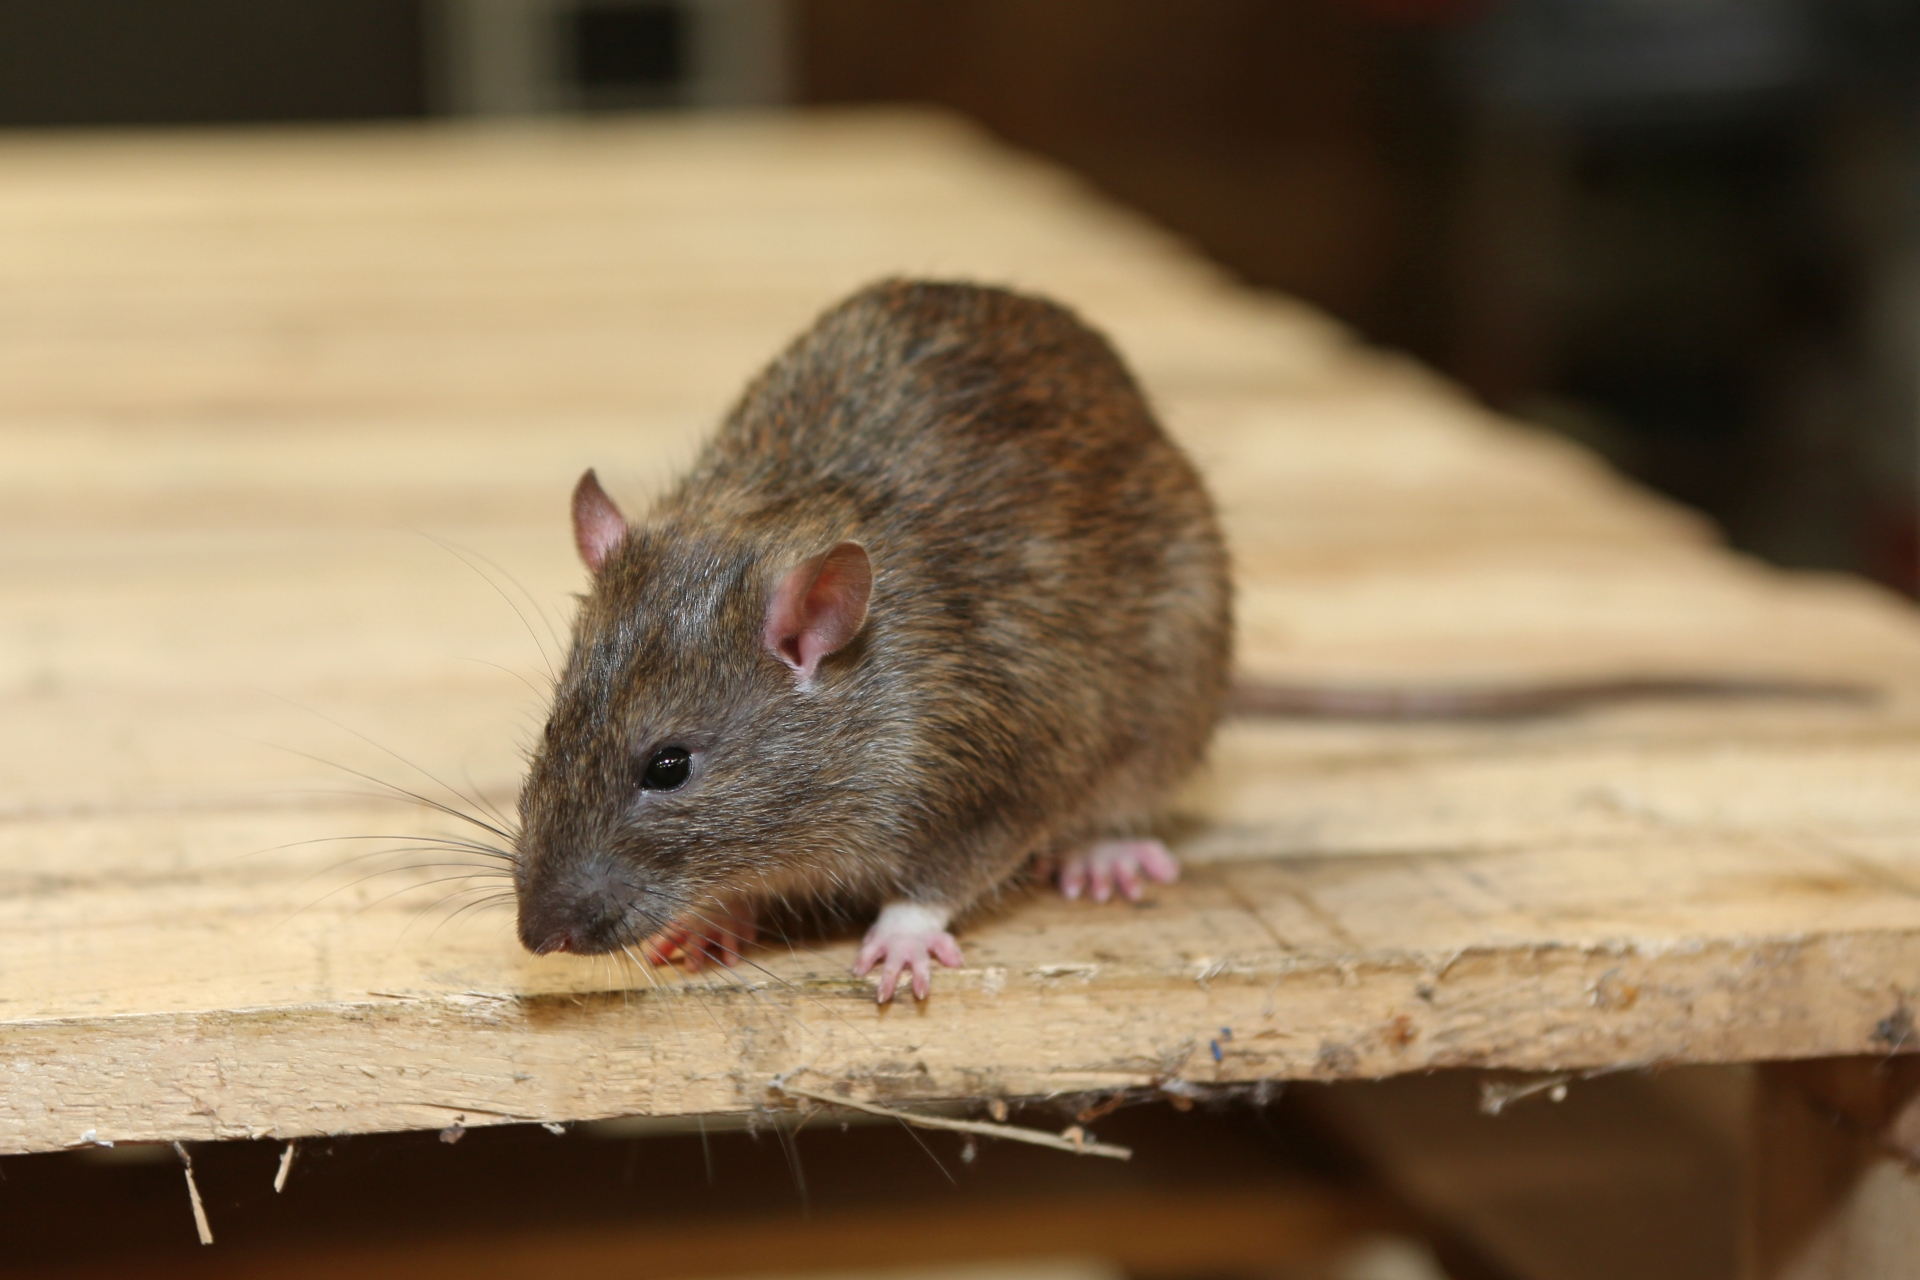 Rat extermination, Pest Control in Gidea Park, Heath Park, RM2. Call Now 020 8166 9746